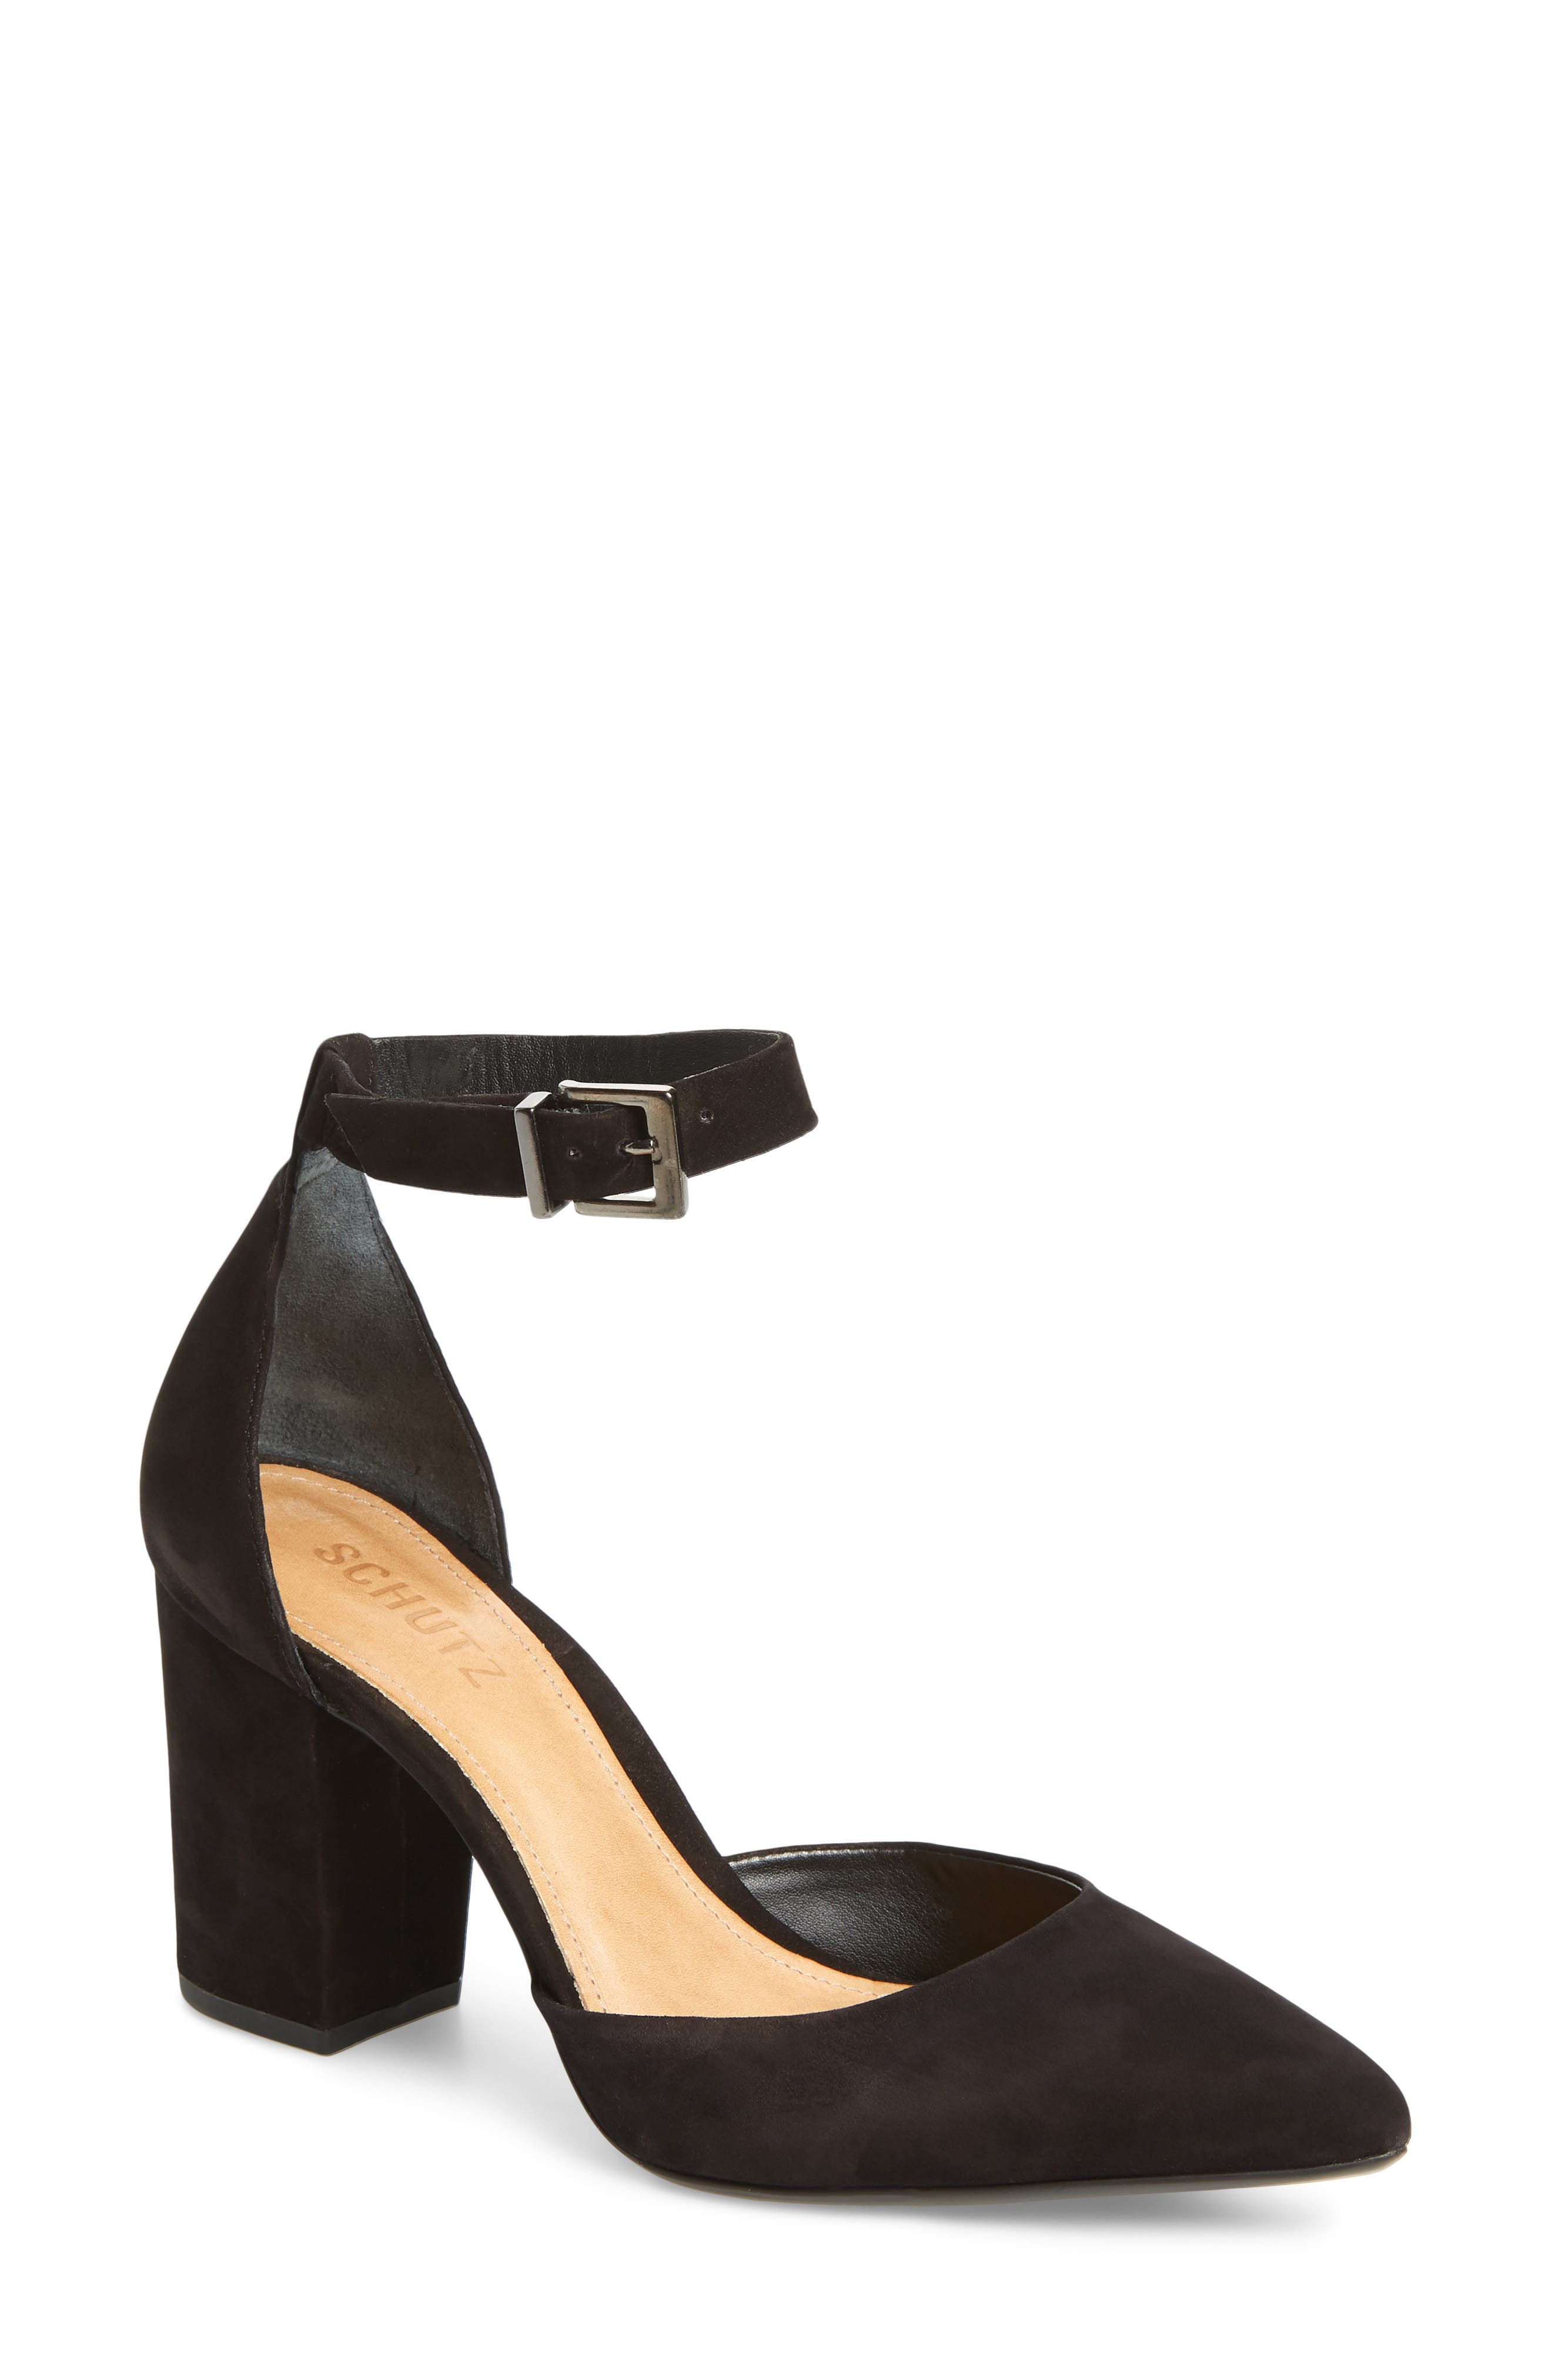 Ionara Ankle Strap Pump,                             Main thumbnail 1, color,                             BLACK NUBUCK LEATHER